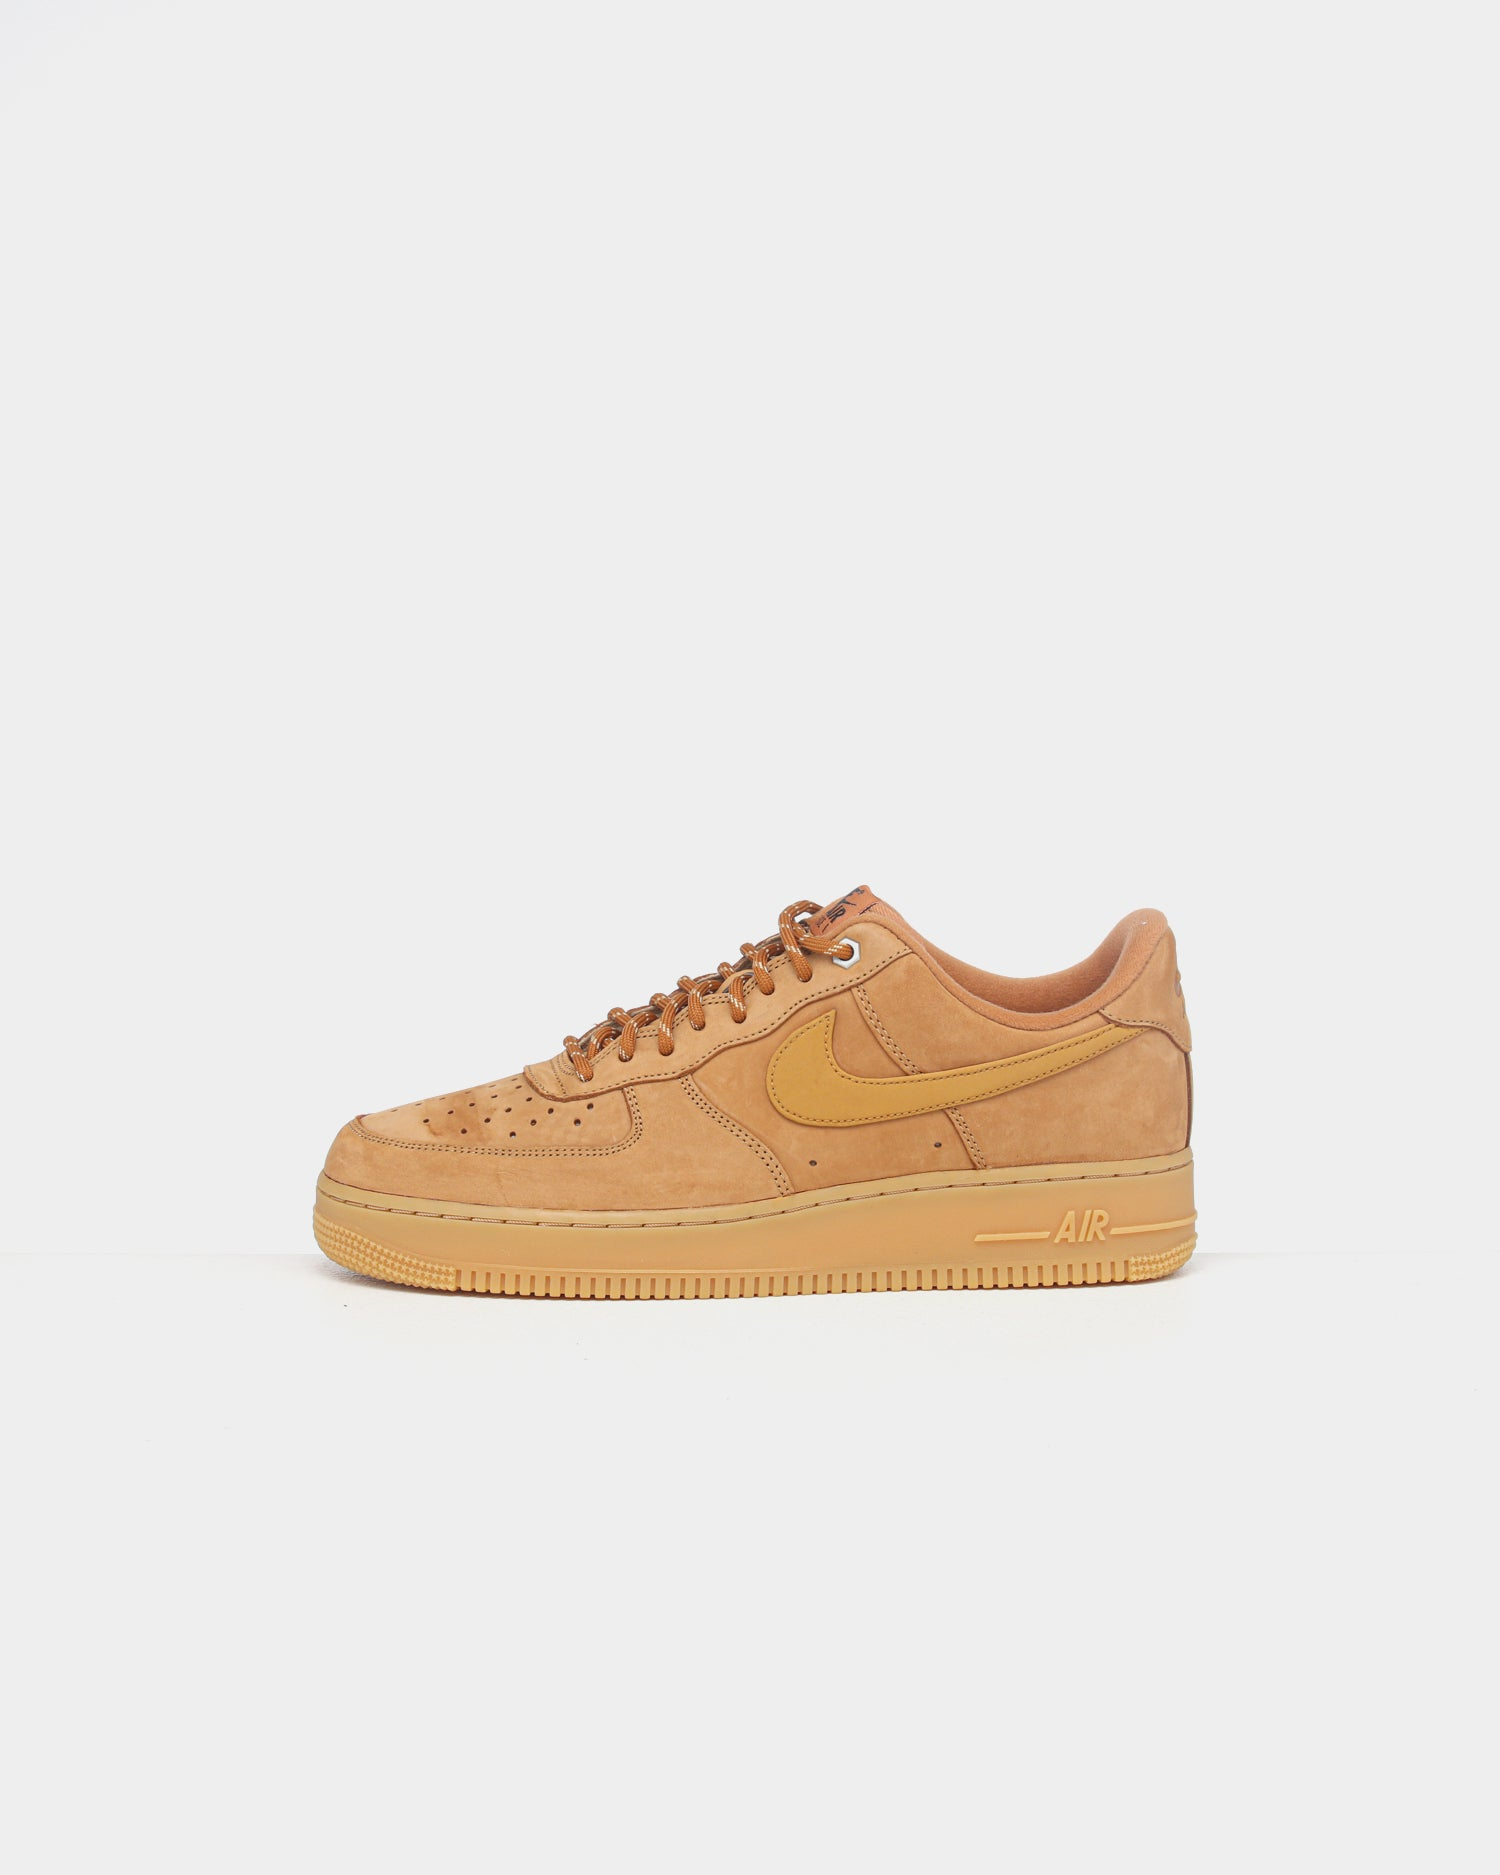 Mens Nike Air Force 1 Low Af1 Wb Suede Sneaker In Wheat Flax Gum